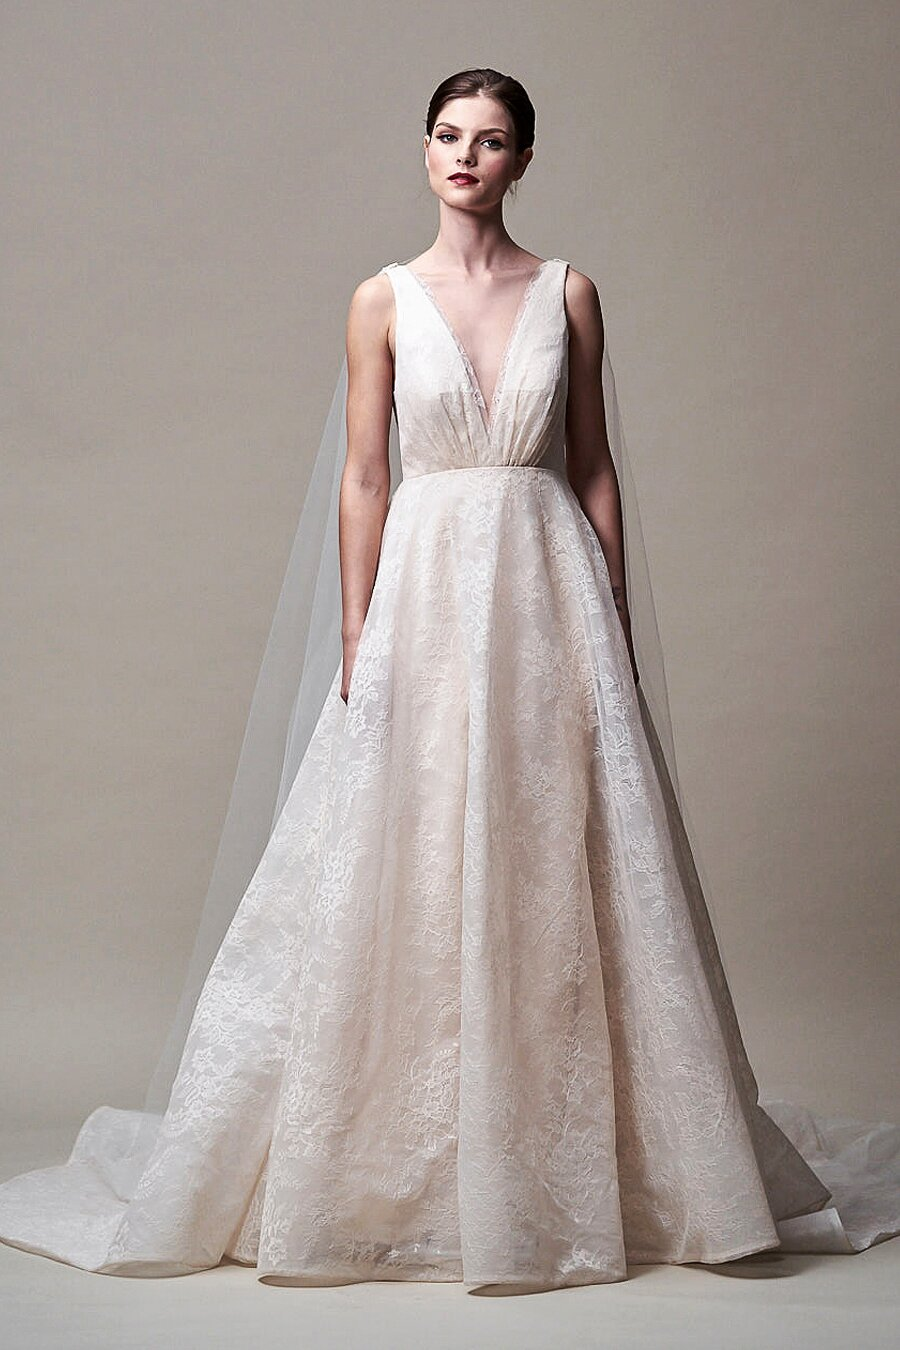 Jenny Yoo Collection Bridal Fall 2018 Wedding Dress Collection